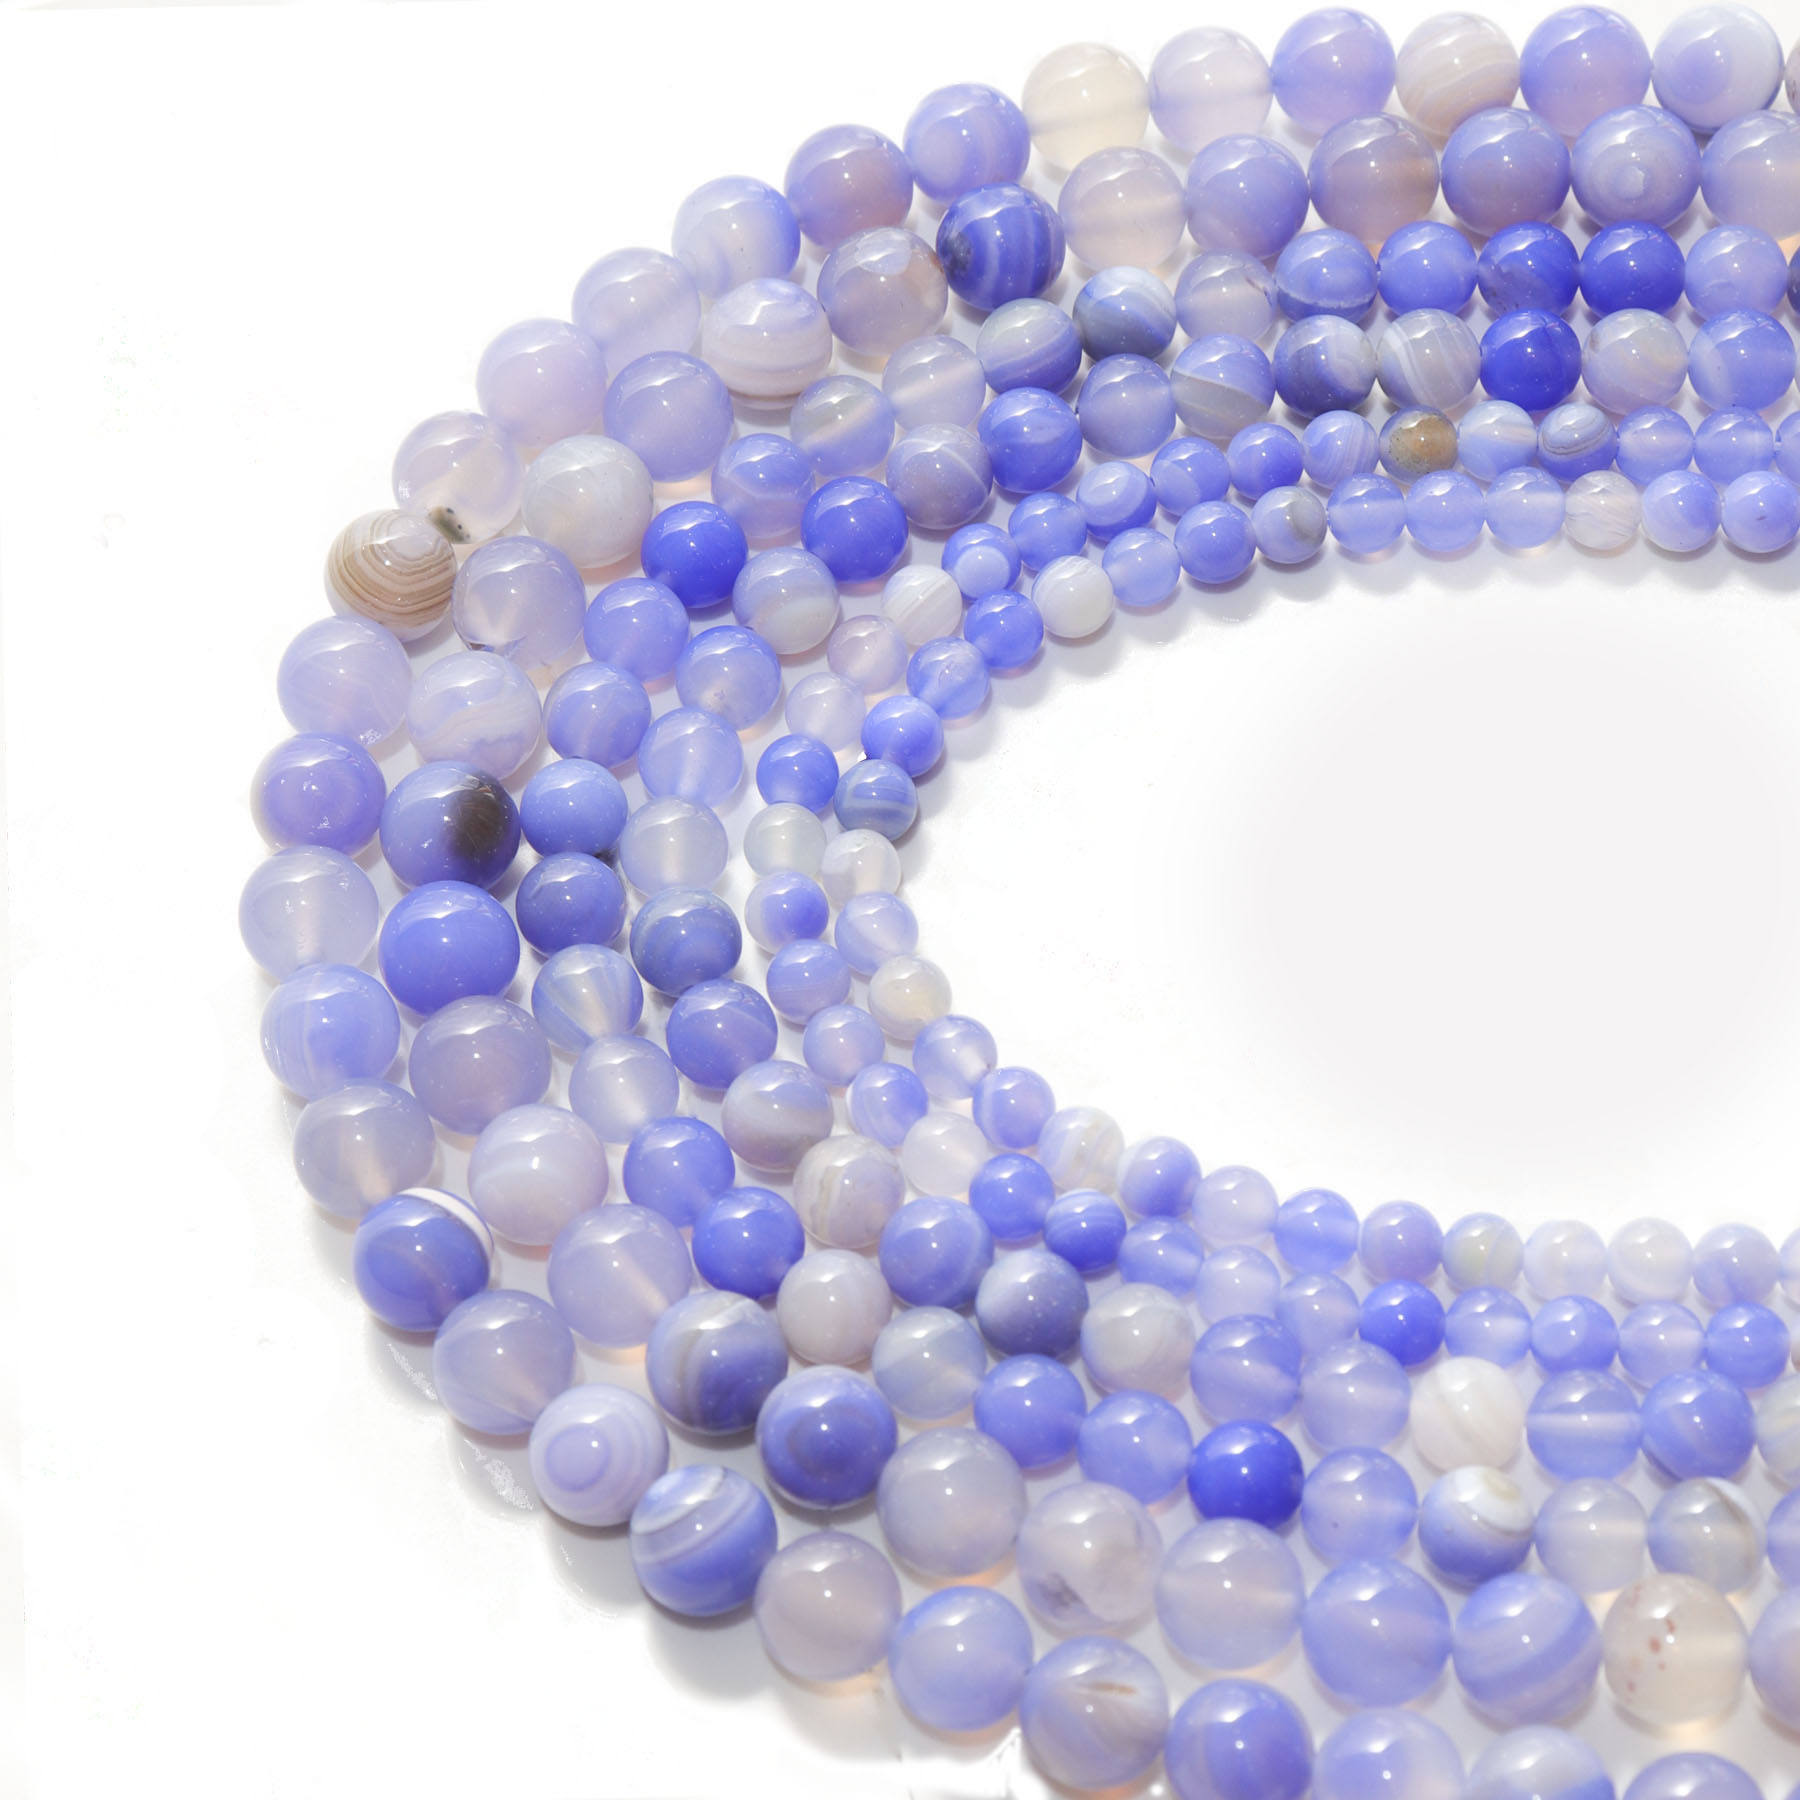 Natural Stone Beads Blue Dot Agate Sodalite Stone Beads 6mm 8mm 10mm Bead DIY Bracelets Making